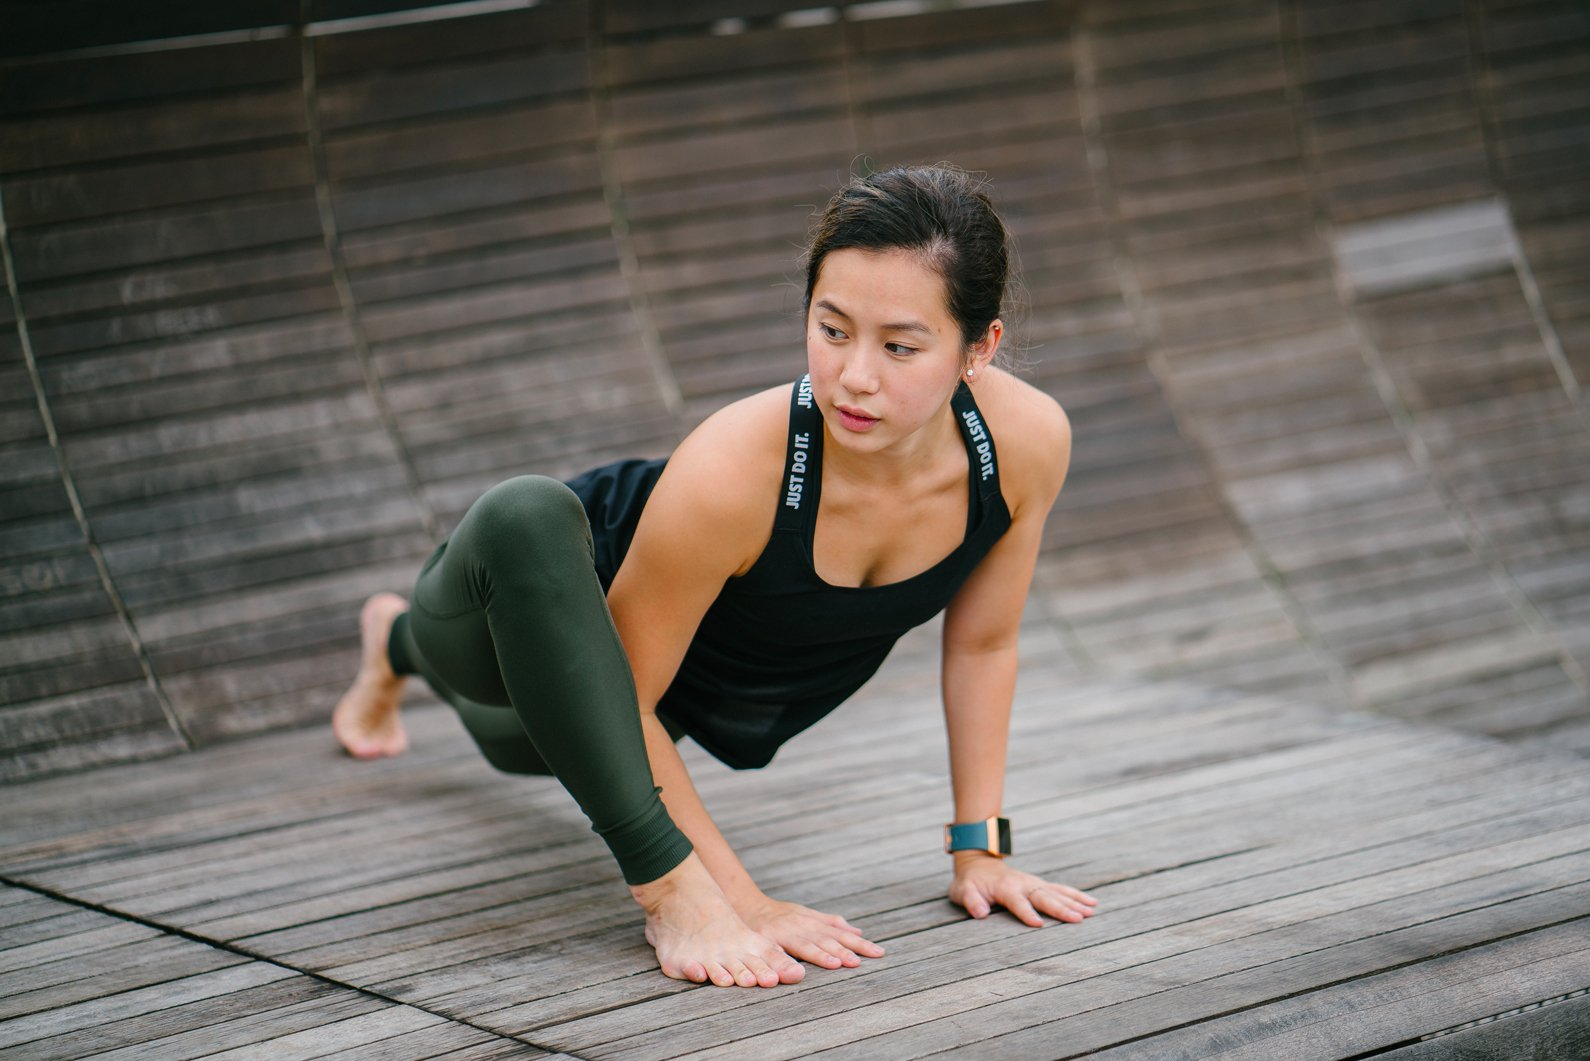 stretchingpro-exercices-stretching-etirement-dangereux